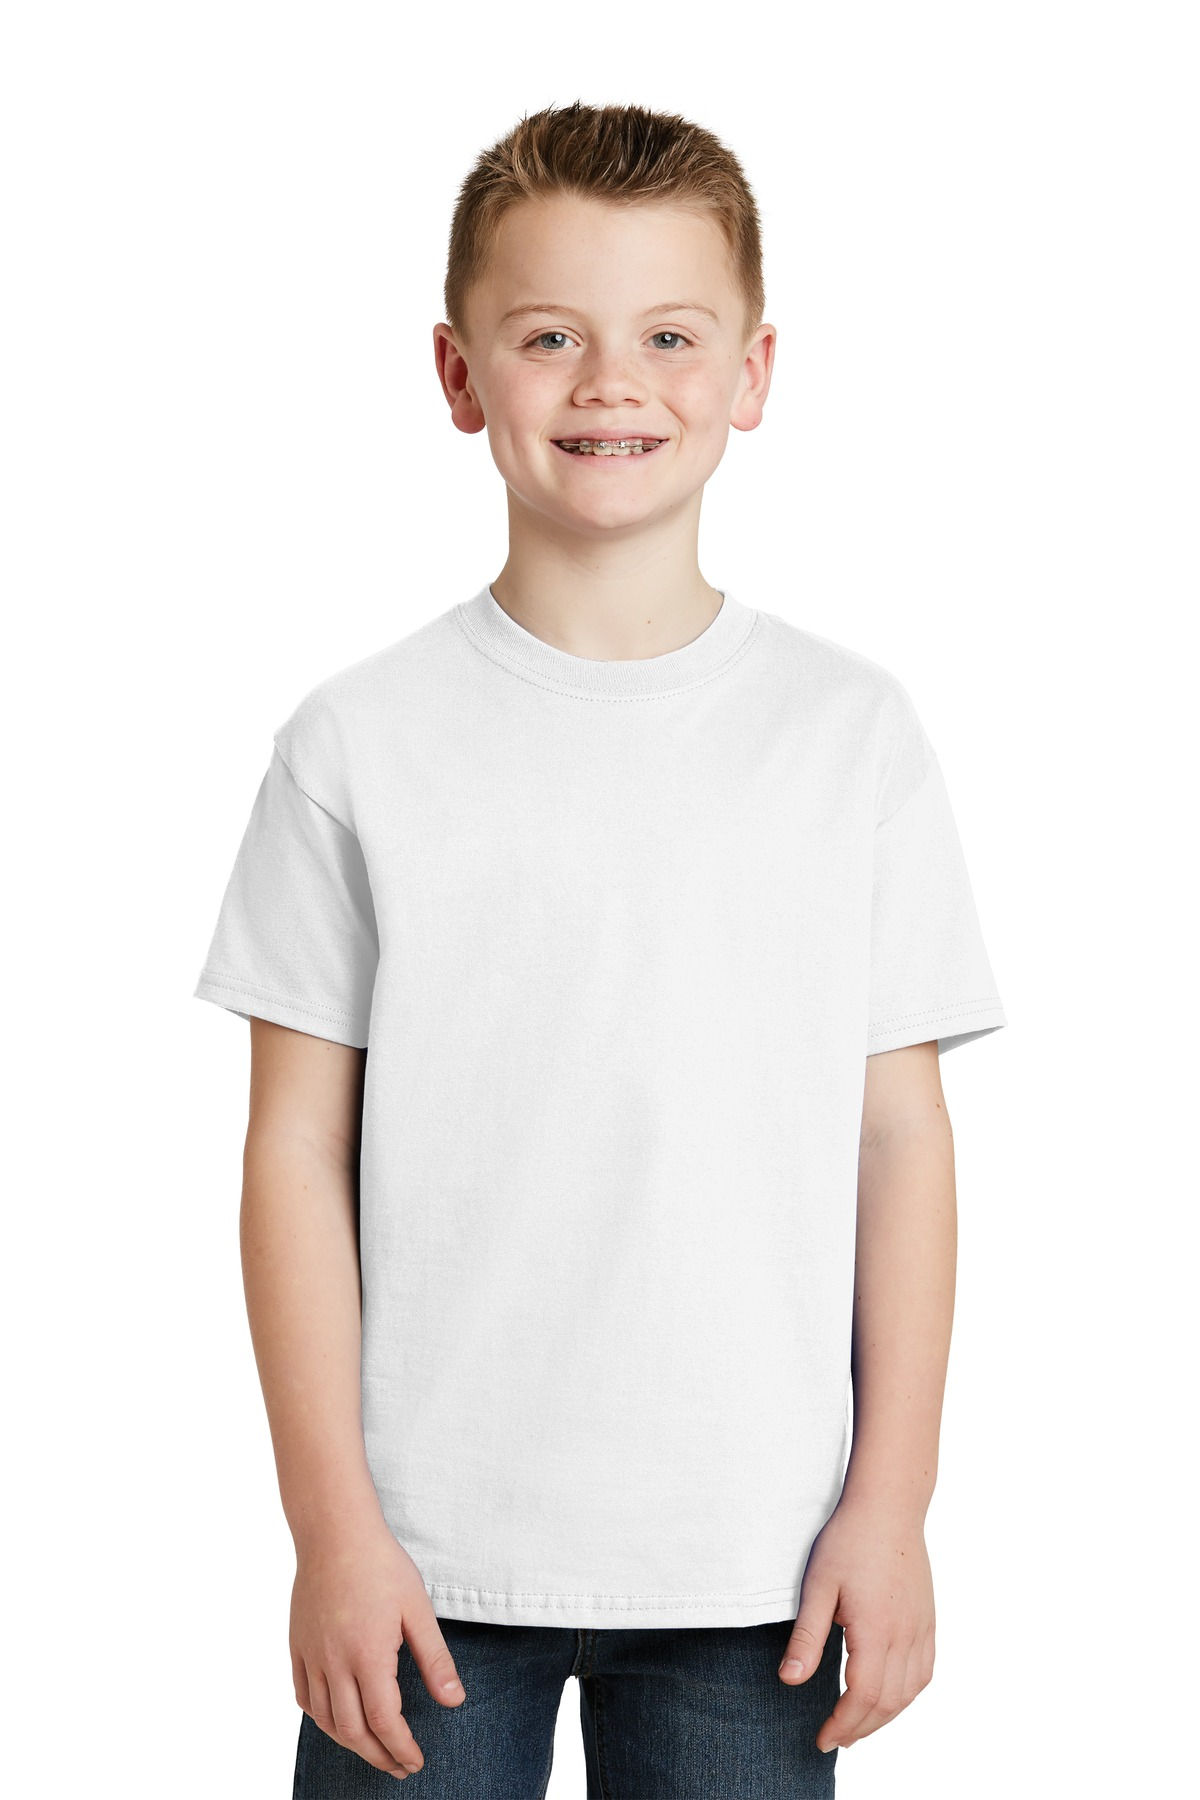 Hanes ®  - Youth Tagless ®  100%  Cotton T-Shirt.  5450 - White